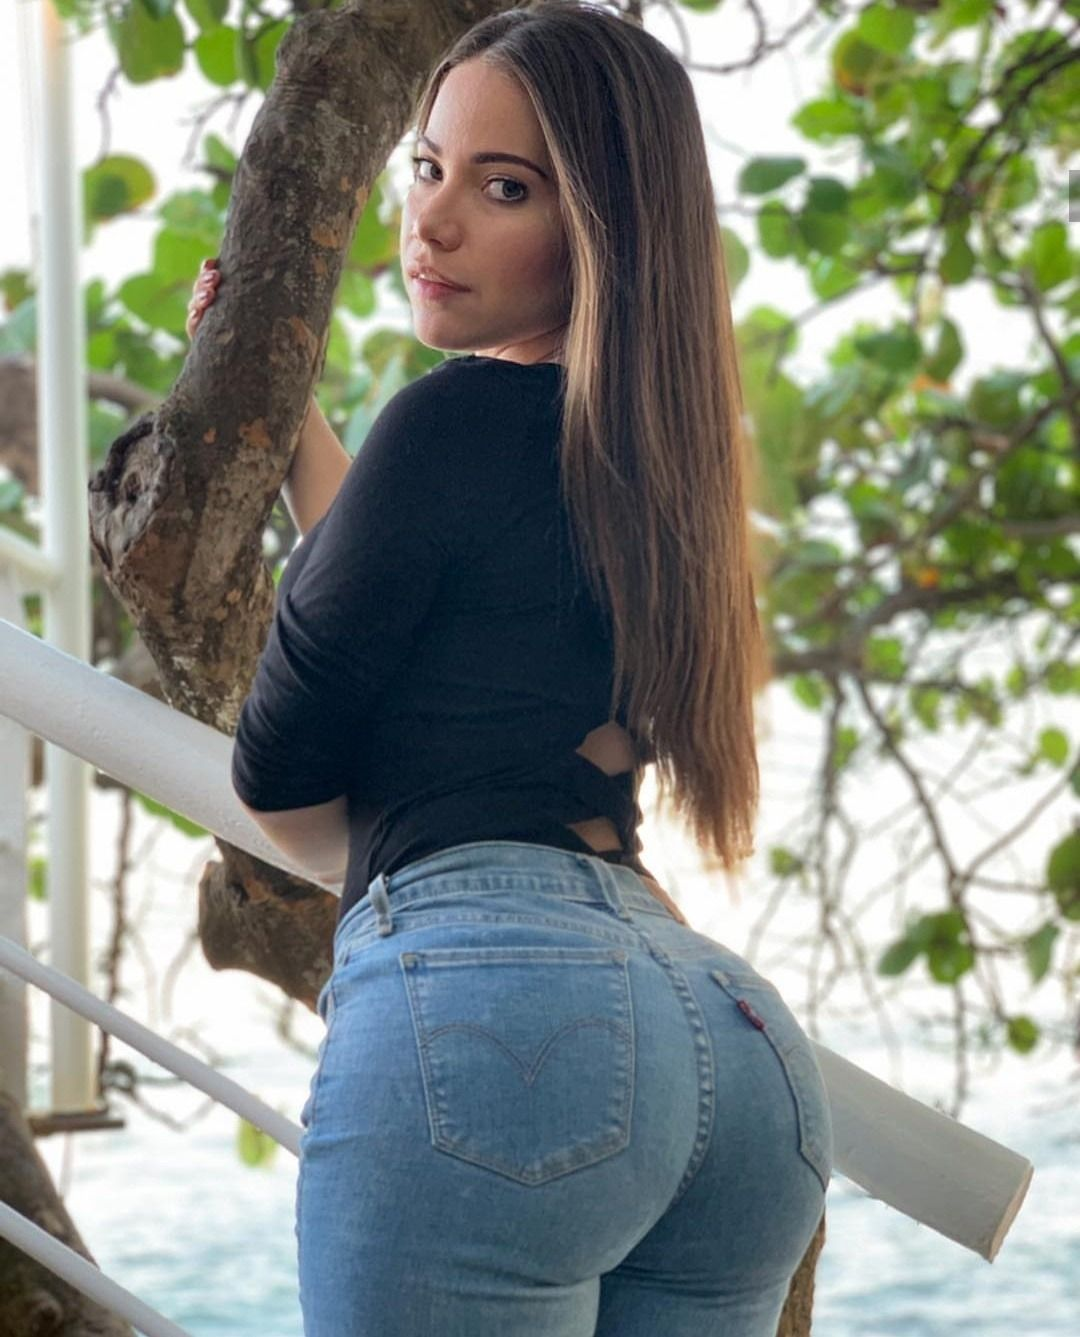 Beautiful thicc jeans babe